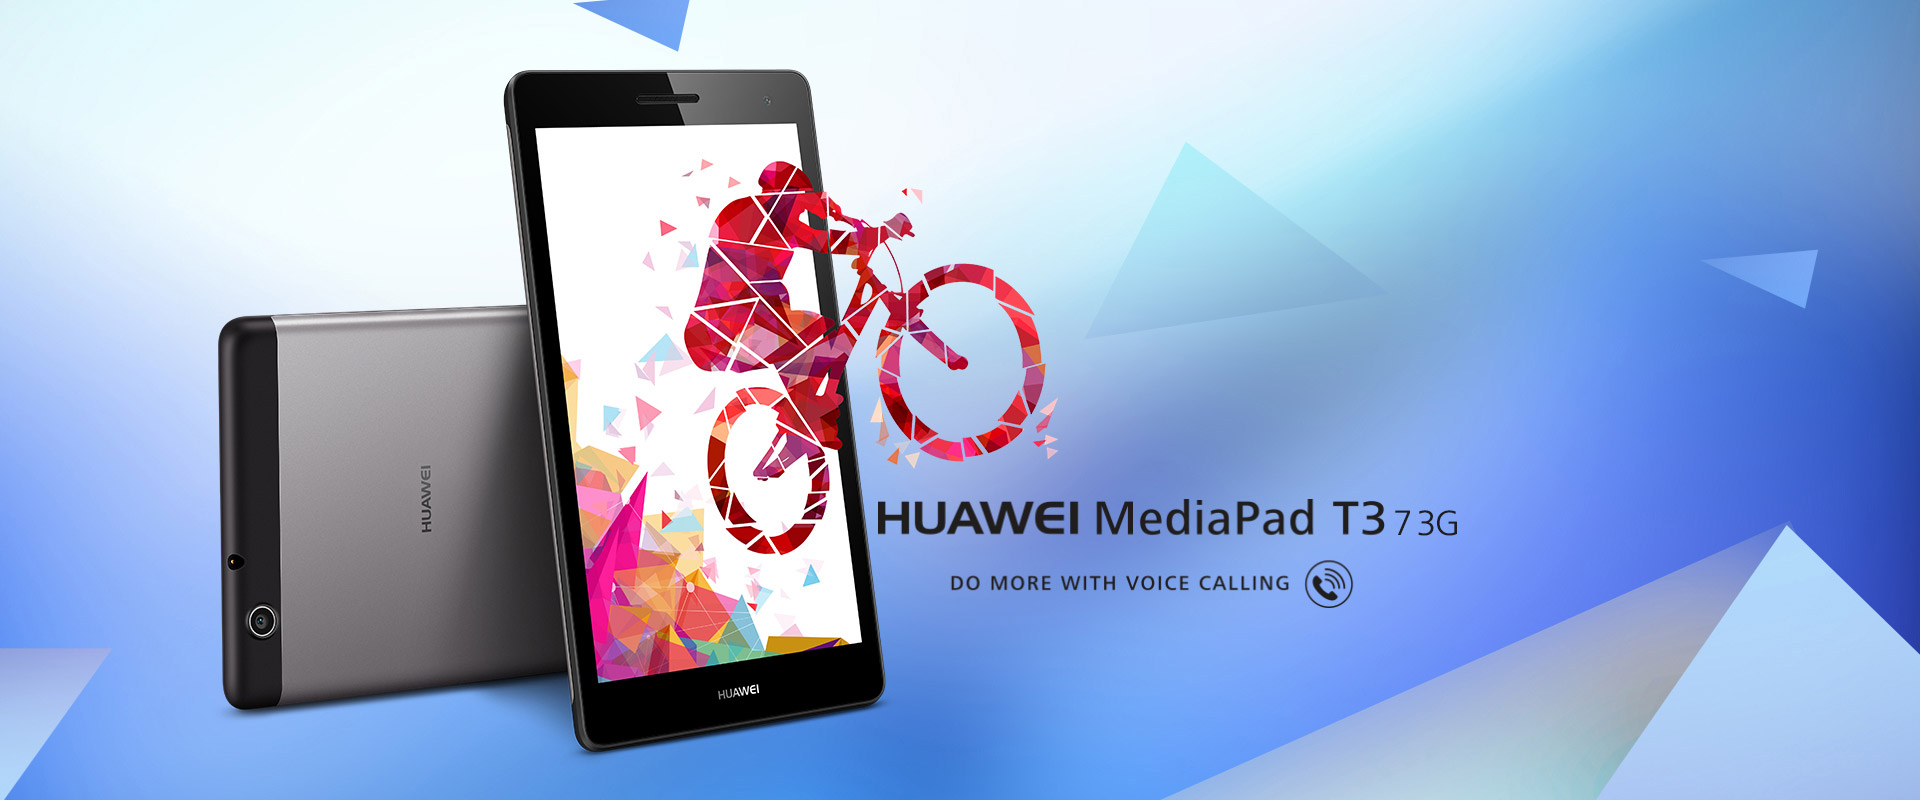 reputable site 2caff e1619 Huawei MediaPad T37, Tablet PC